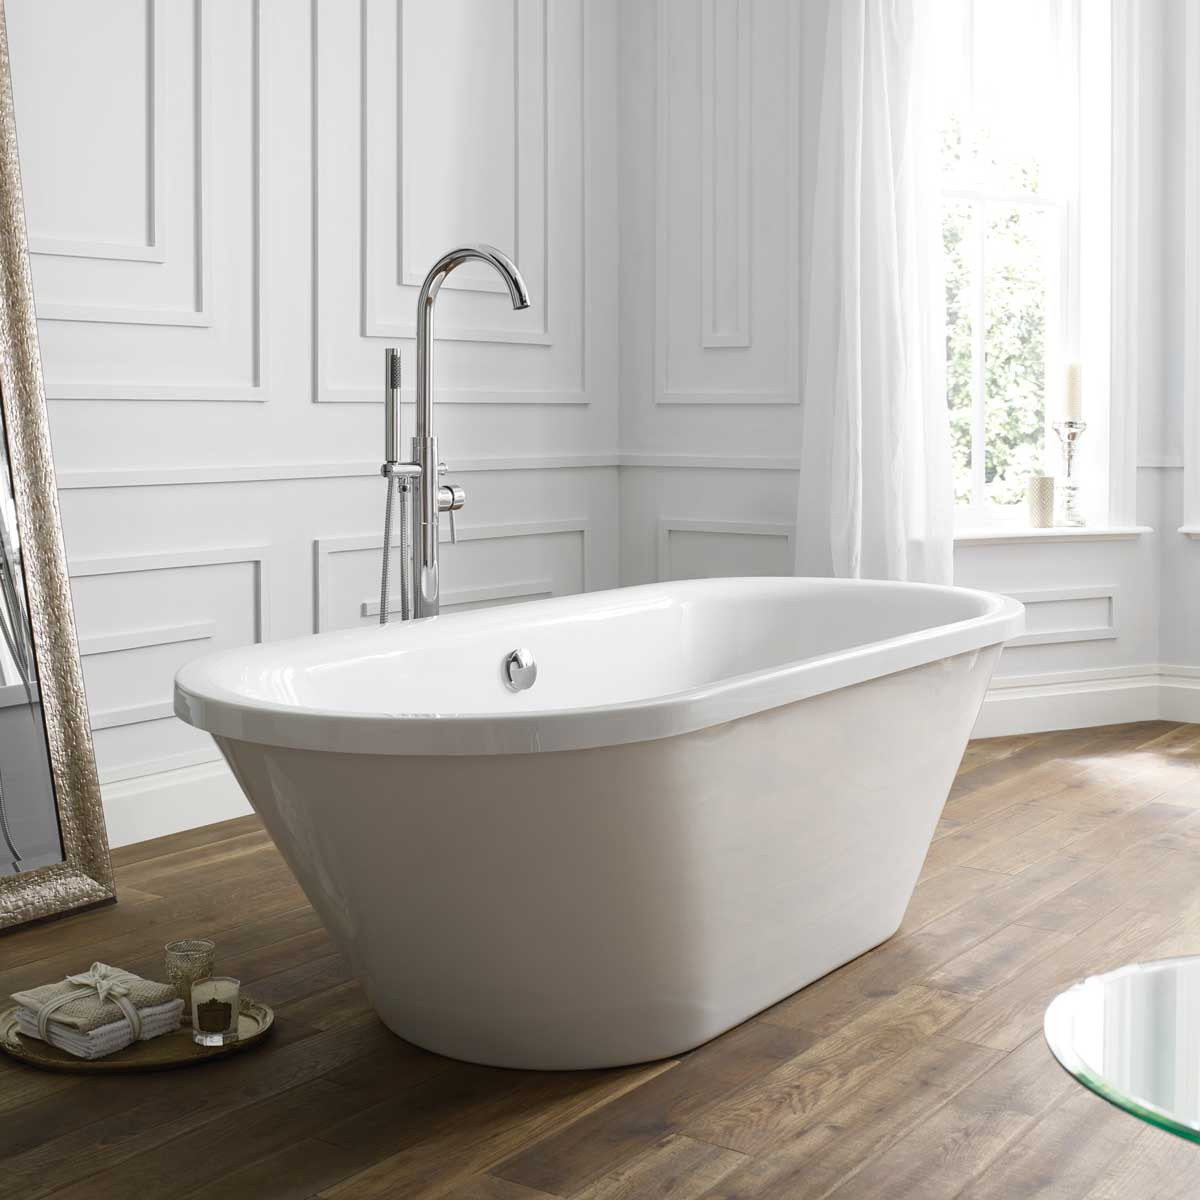 april_haworth_freestanding_skirted_bath_white_1800_x_800